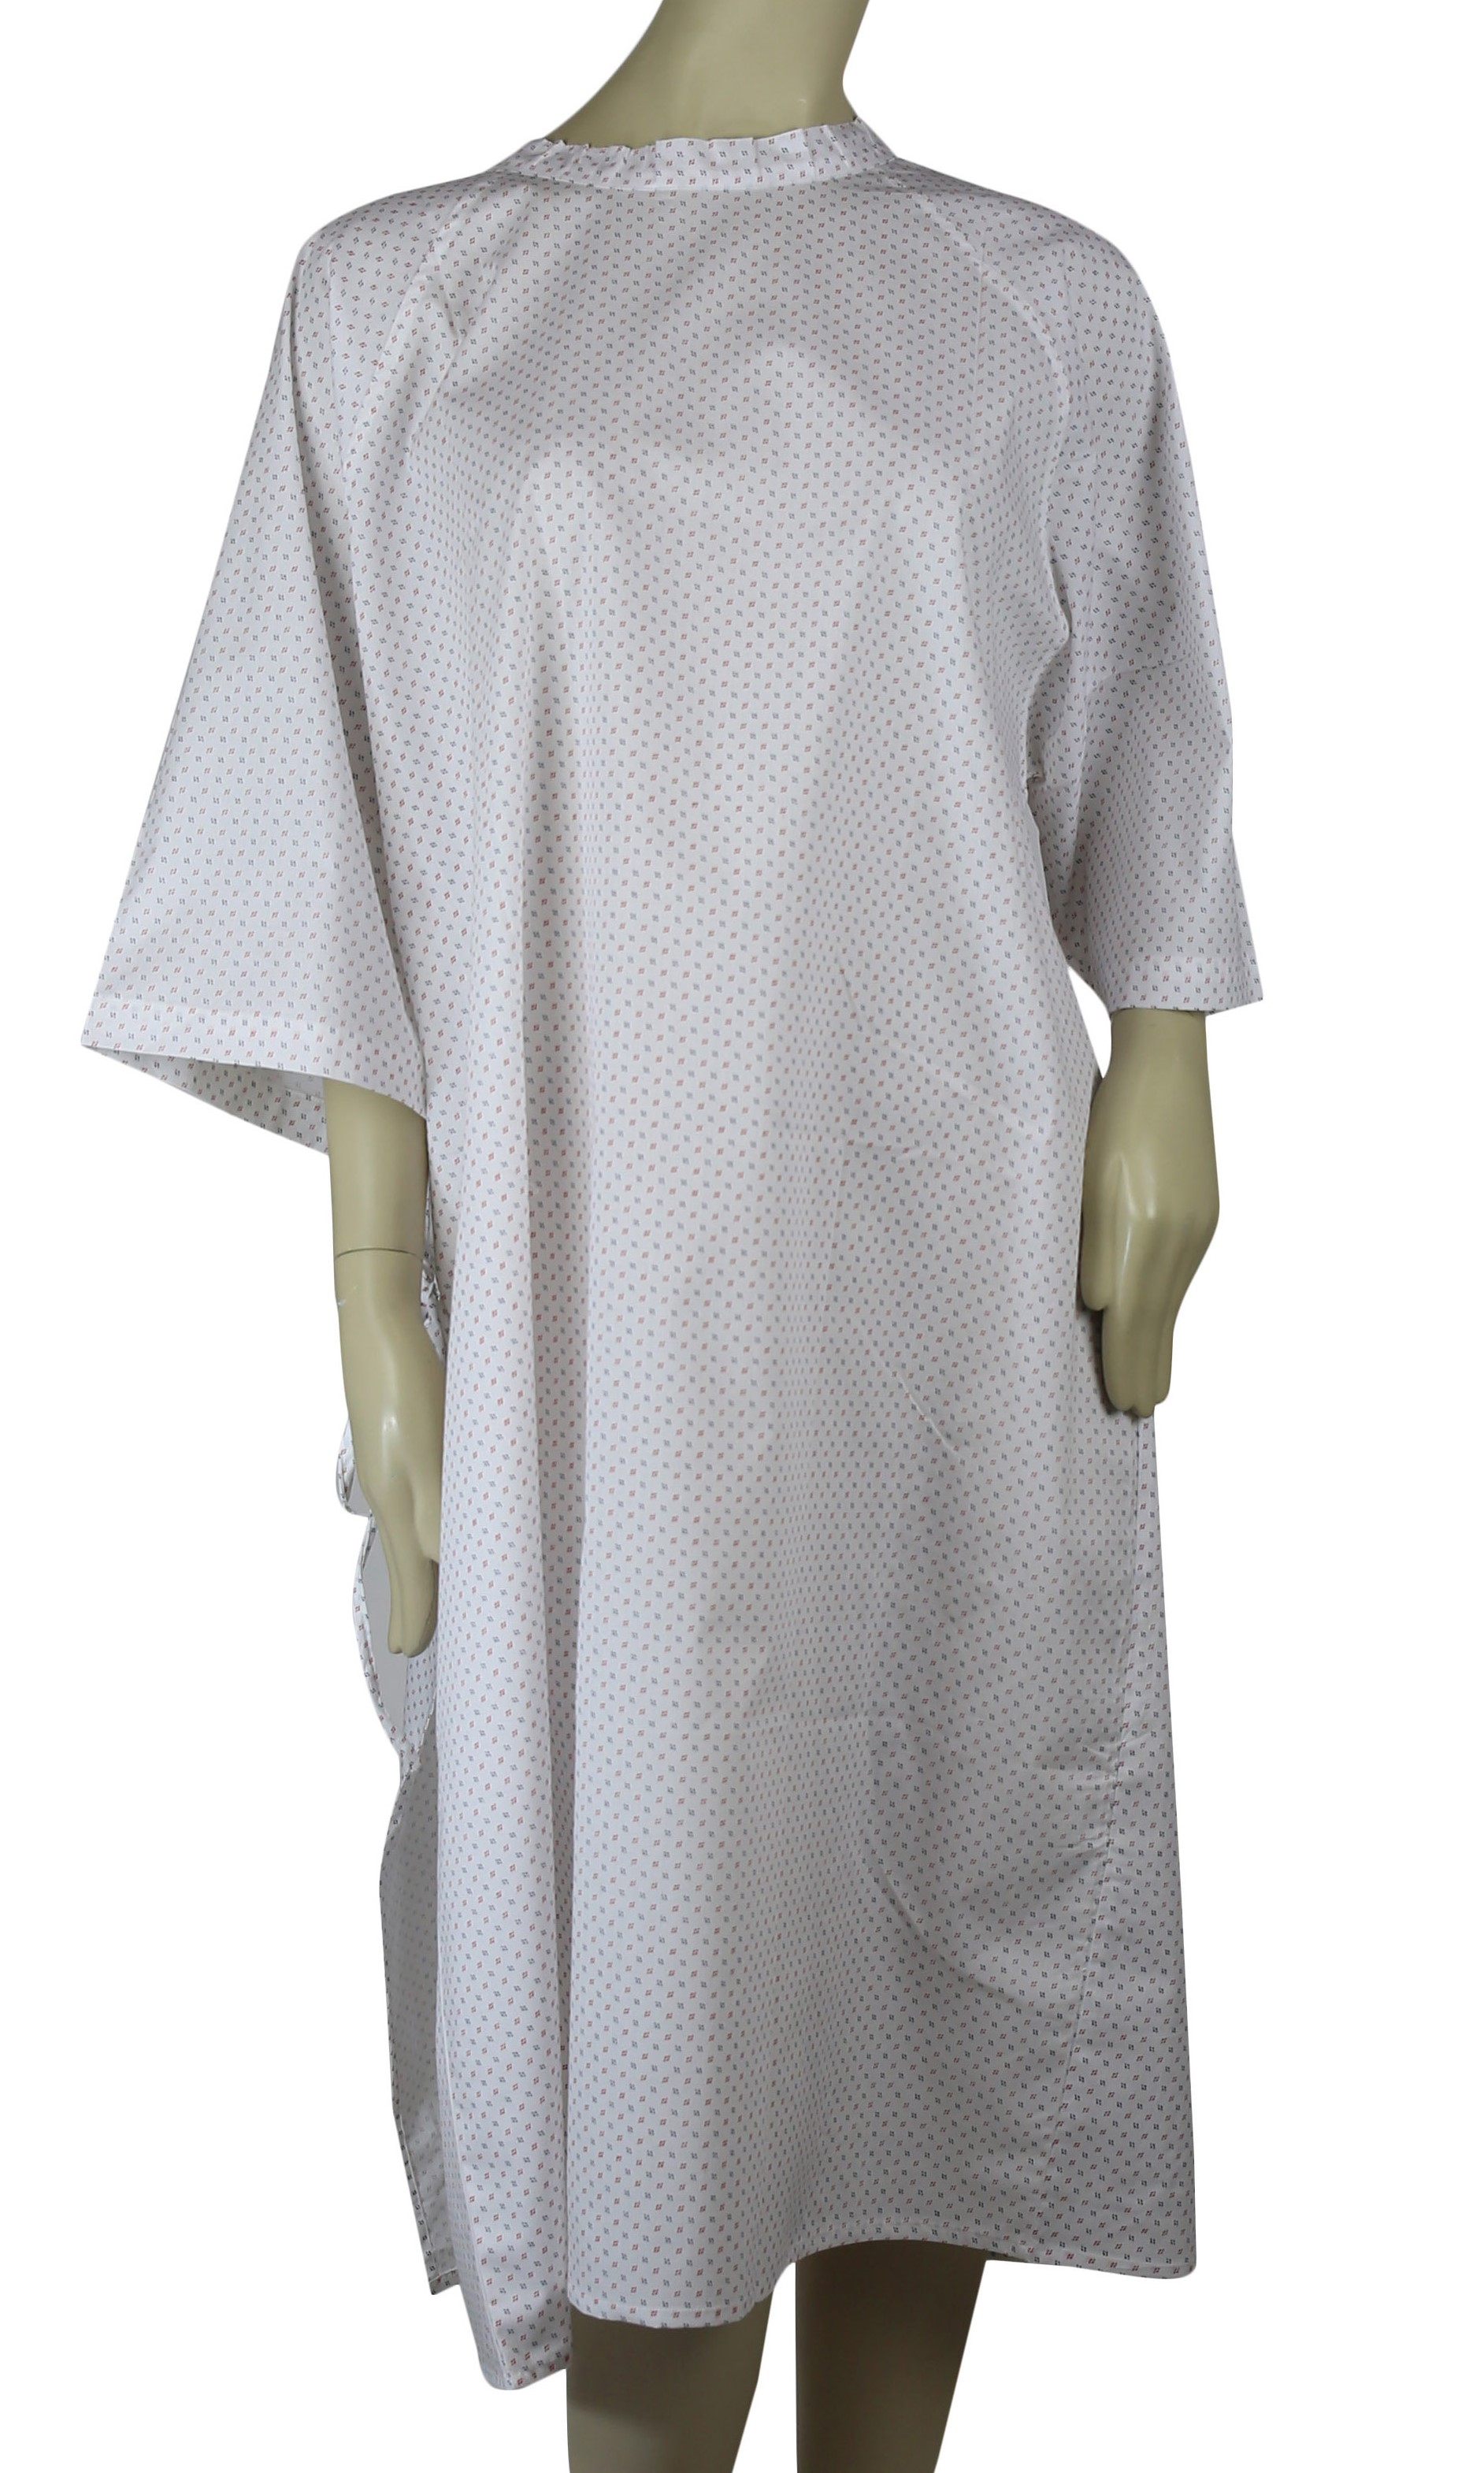 PatientGown-SP08